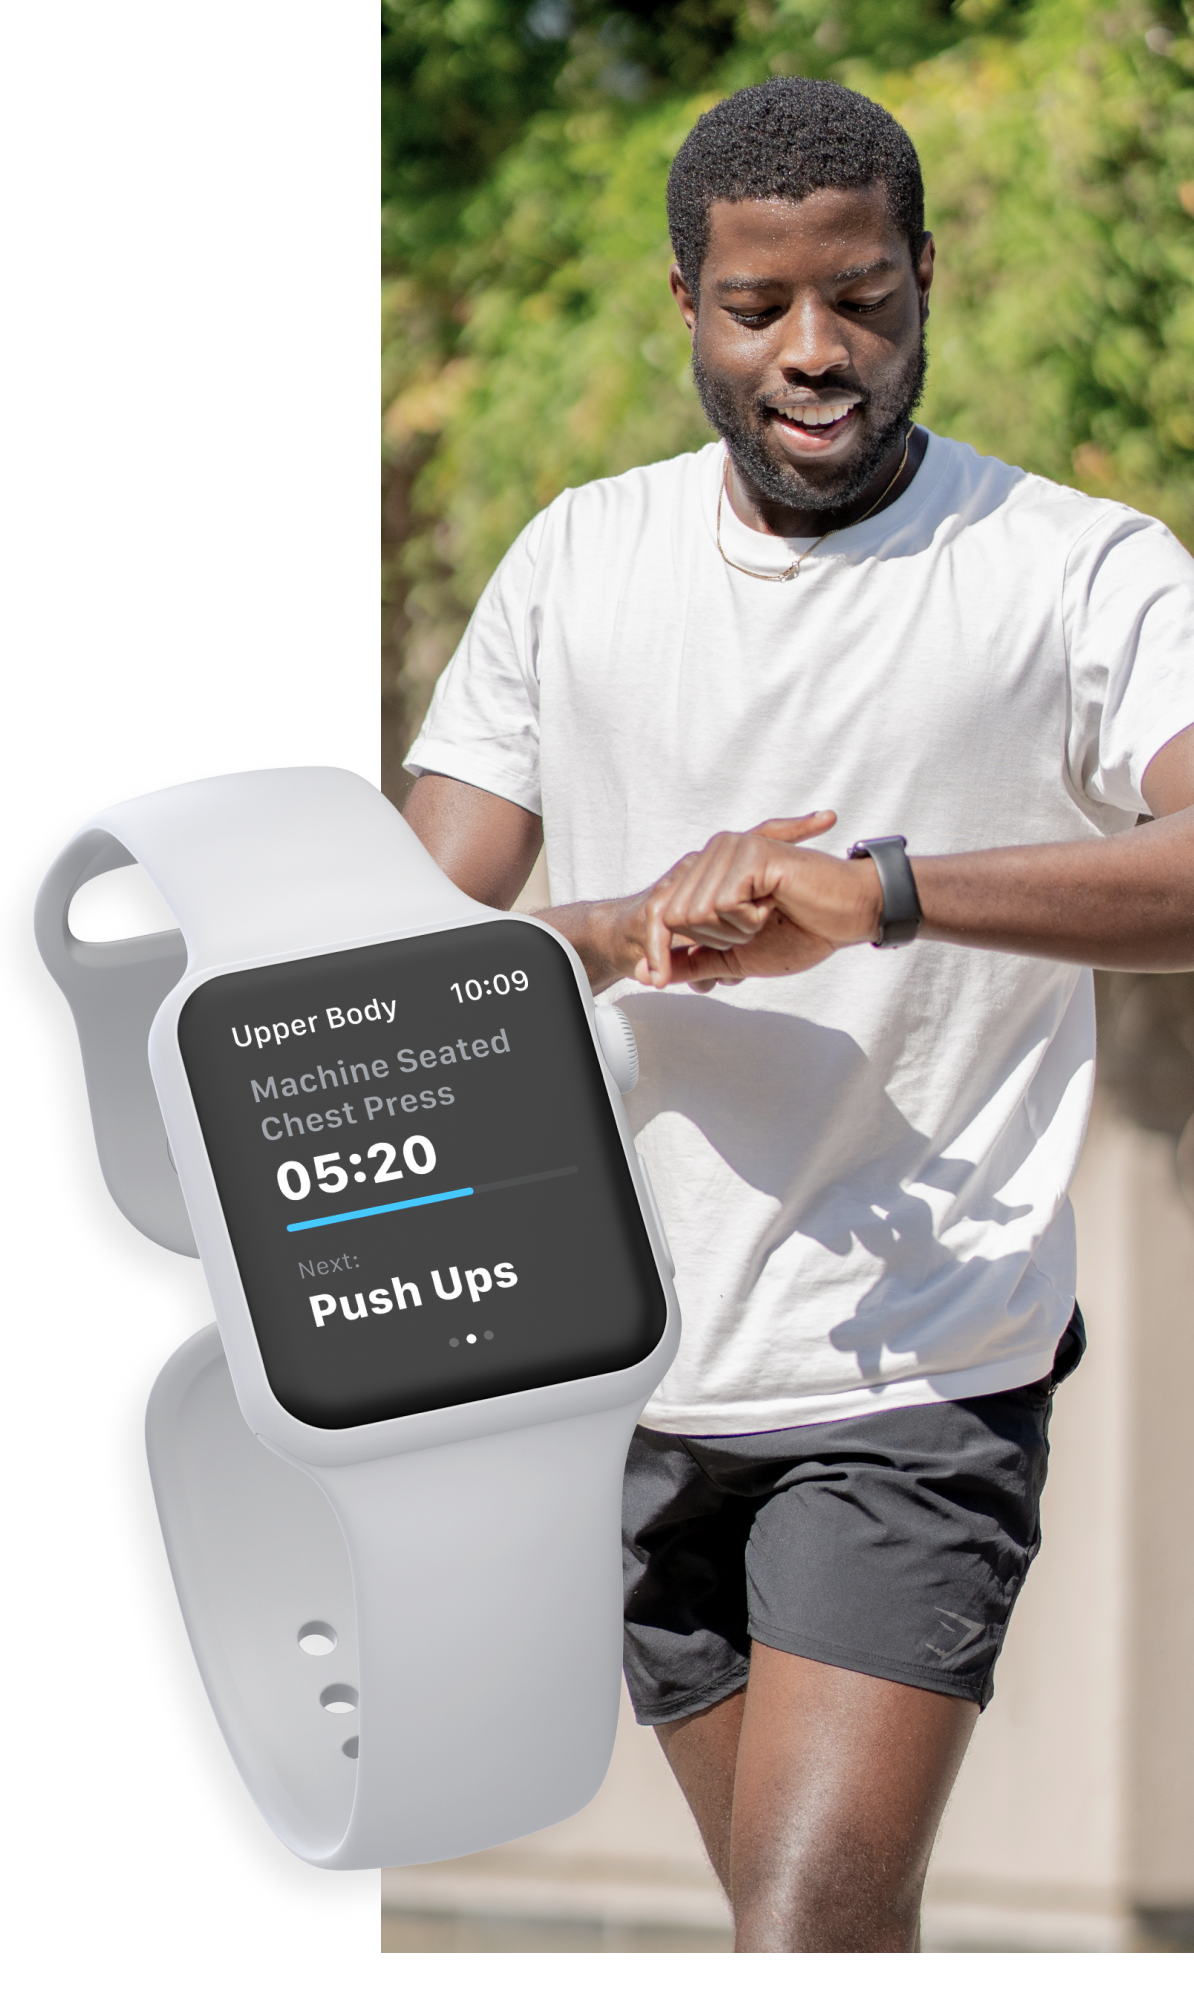 Clients can start workouts and cardio sessions with the new Apple Watch App powered by Trainerize